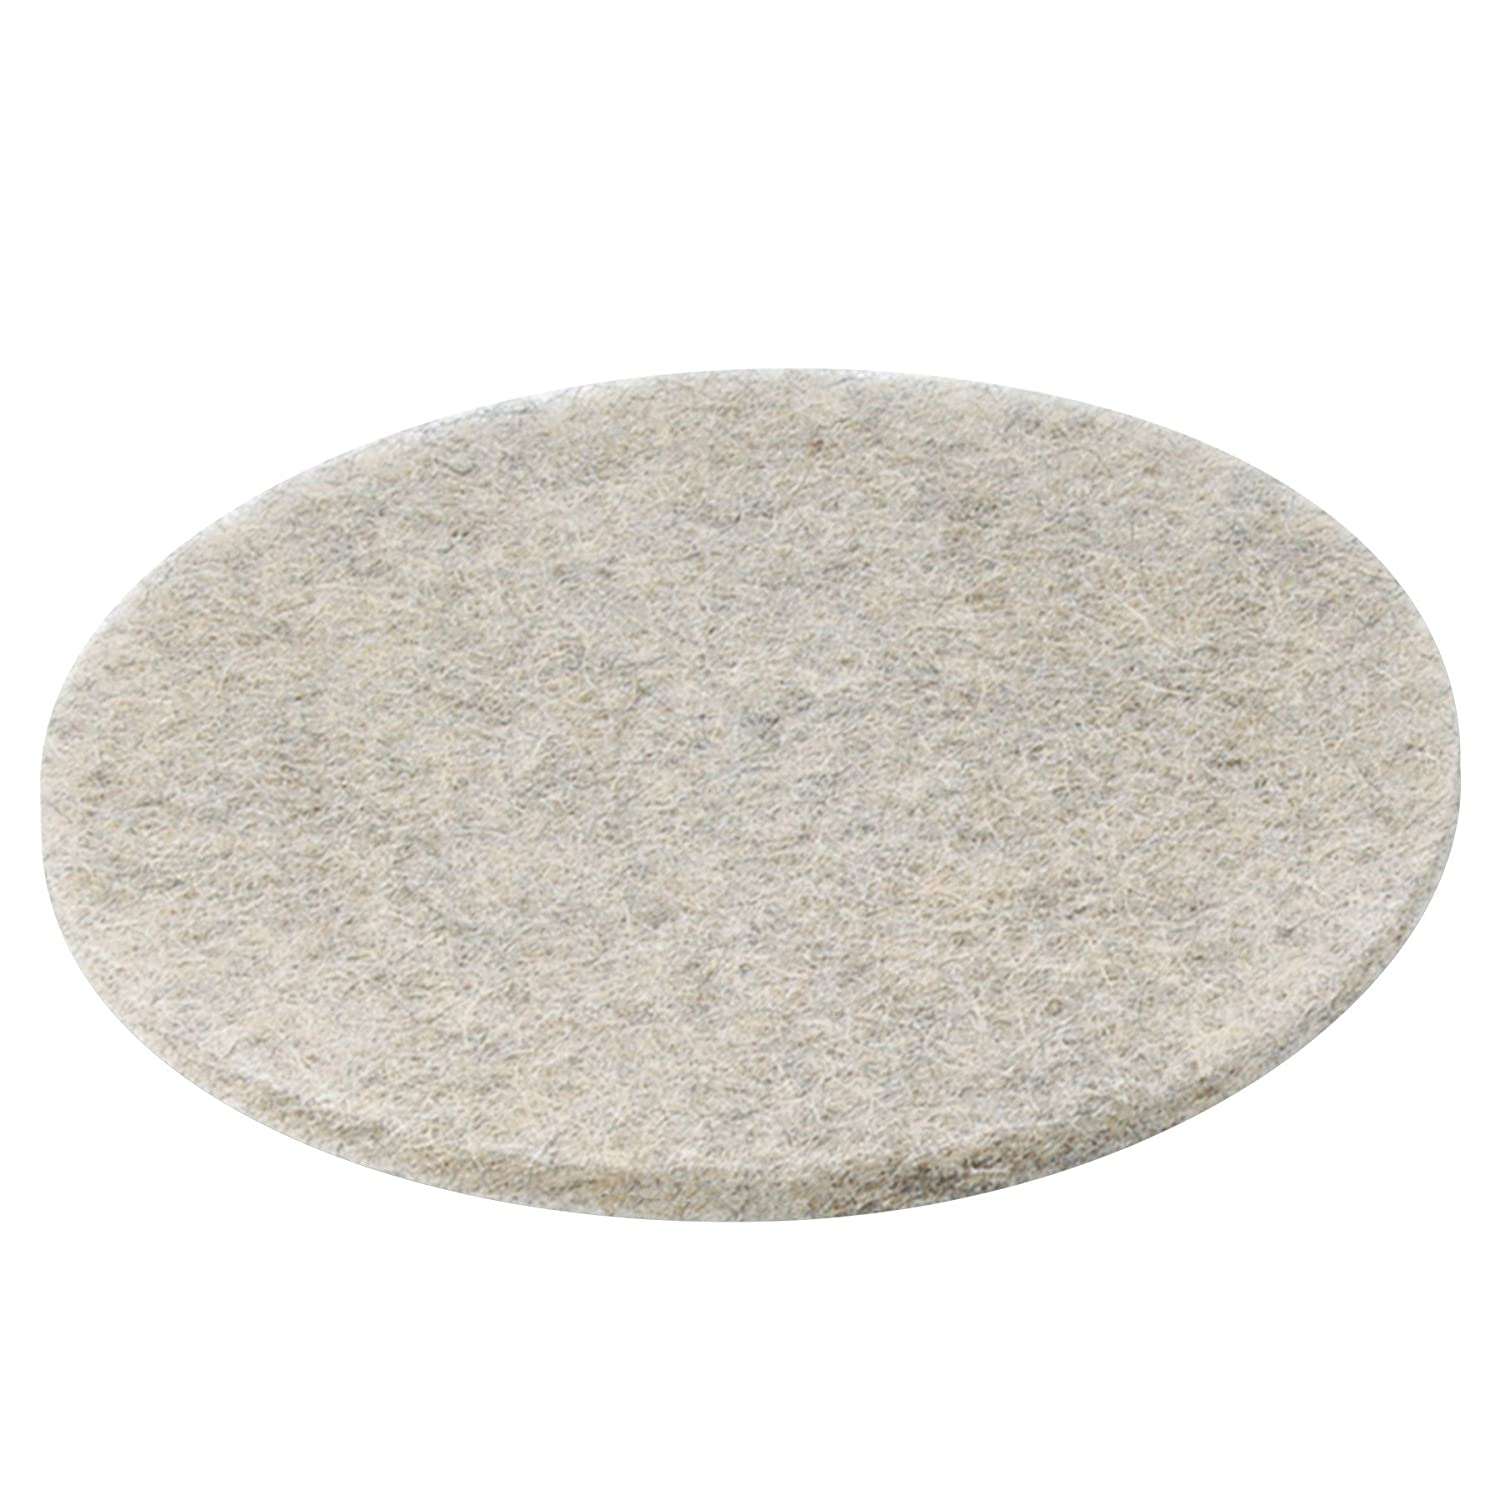 Boardwalk 4020NHE Natural Hair Extra High-Speed Floor Pads, Natural, 20 Diameter (Case of 5) United Stationers Premiere Pads 4020NHE 171746